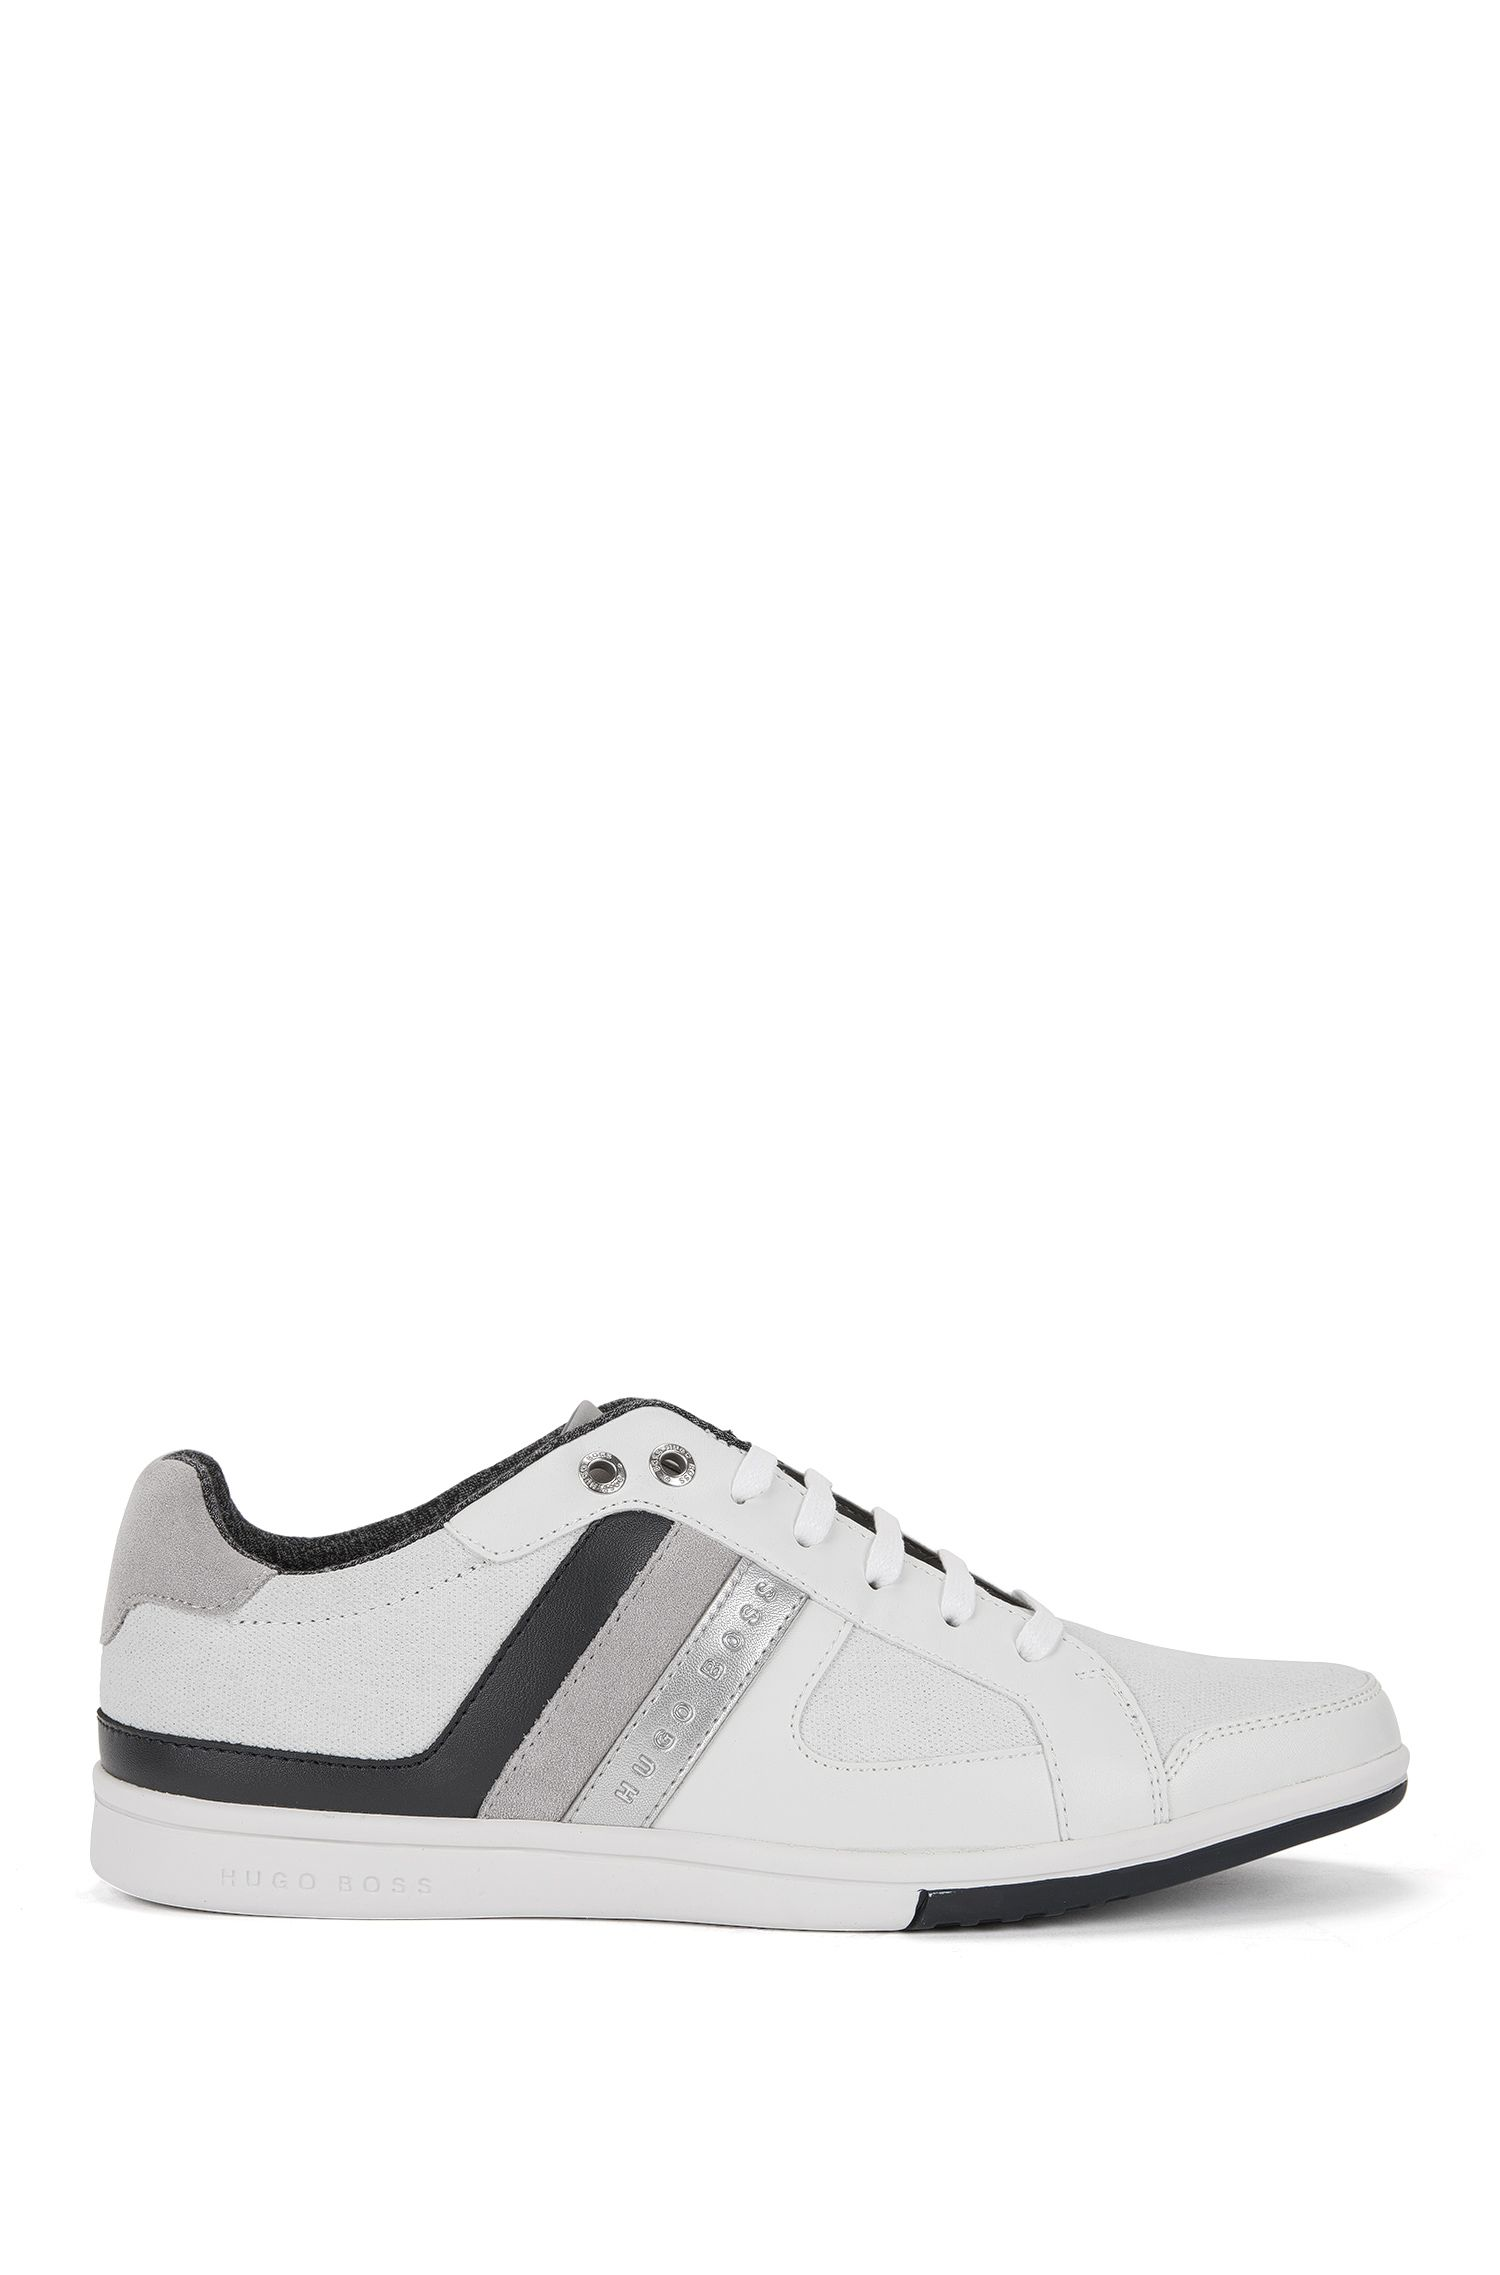 Low-top lace-up trainers in leather and canvas with stripe detail